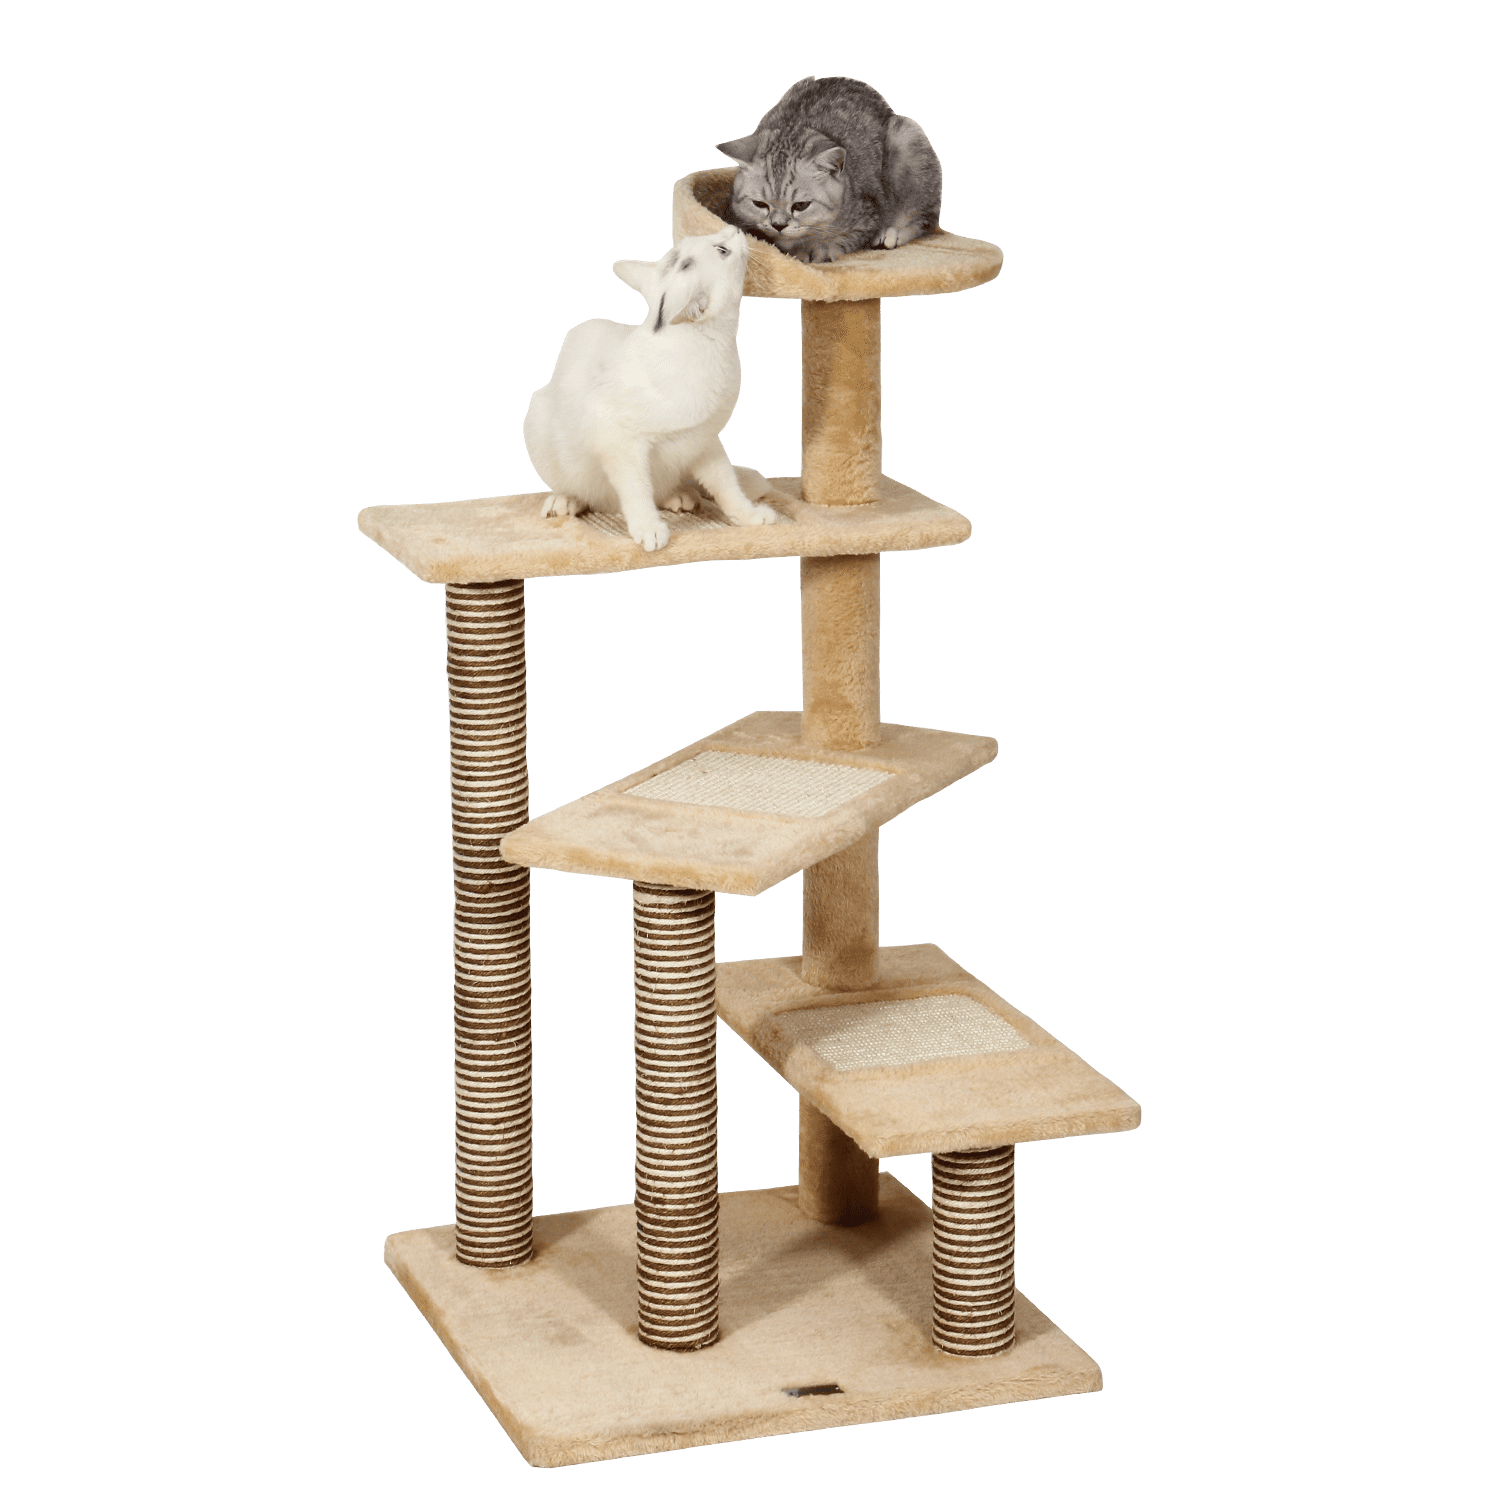 """Allieroo 40"""" H Multi-Level Kitten Cat Tree Furniture Climber Rope Ladder 5 Tiers Cat Tower Cat Scratching... by Allieroo"""